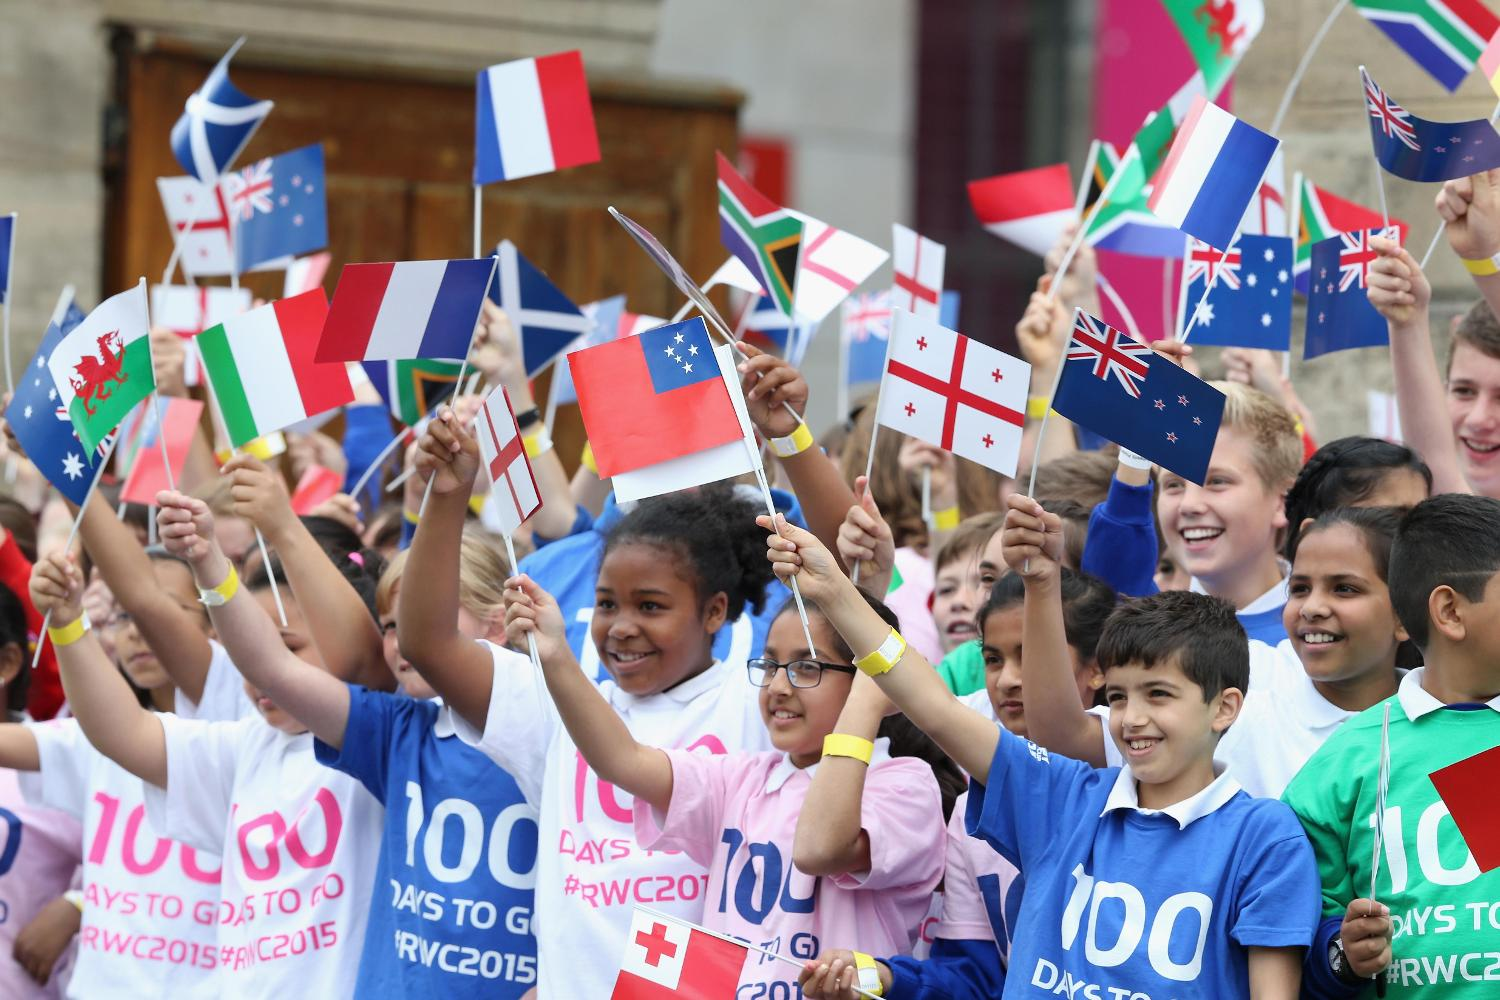 Schools benefit from RWC 2015 legacy